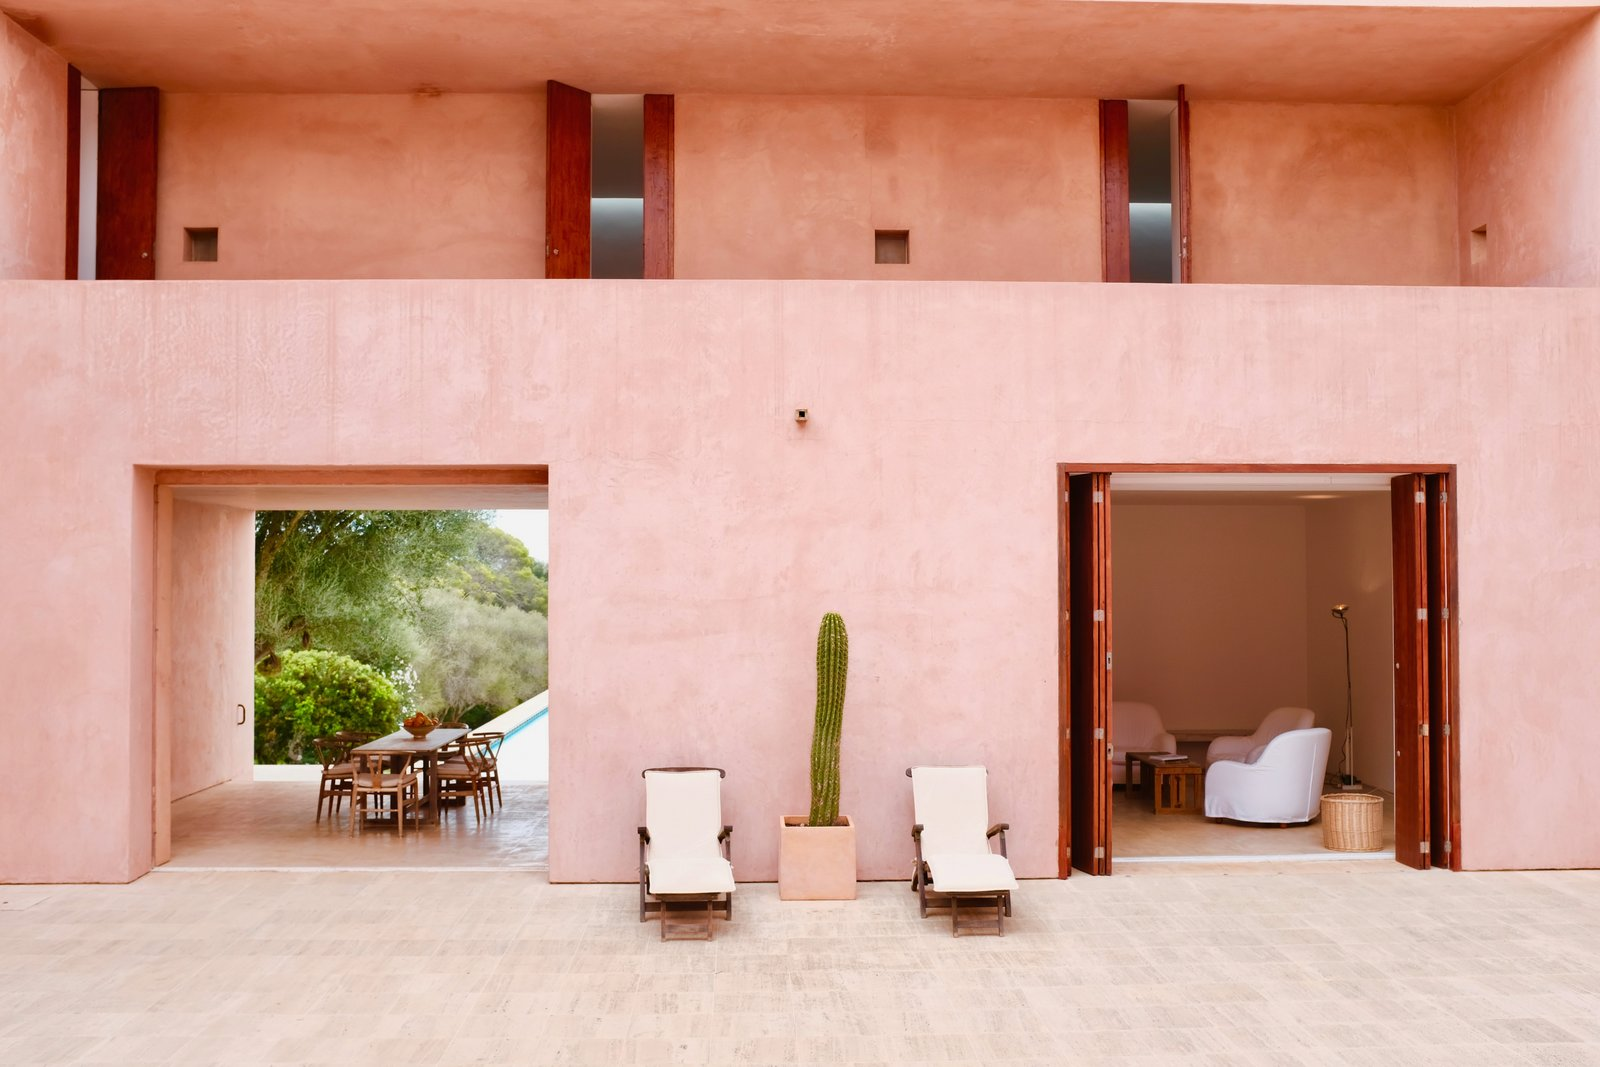 Outdoor, Side Yard, and Large Patio, Porch, Deck This Mallorcan villa was the firm's first full architectural project. It was originally built for German art dealers whom Pawson had met by chance on an Italian beach. Acclaimed for his moody minimalism, the architect lends his signature touch to this five-bedroom home. To obtain a rosy hue, pigments from the local red soil were mixed with plaster.    Photo 2 of 11 in This John Pawson-Designed Retreat in Mallorca Is a Minimalist's Dream from 12 Mediterranean Homes That Are the Antidote to Mid-Winter Blues